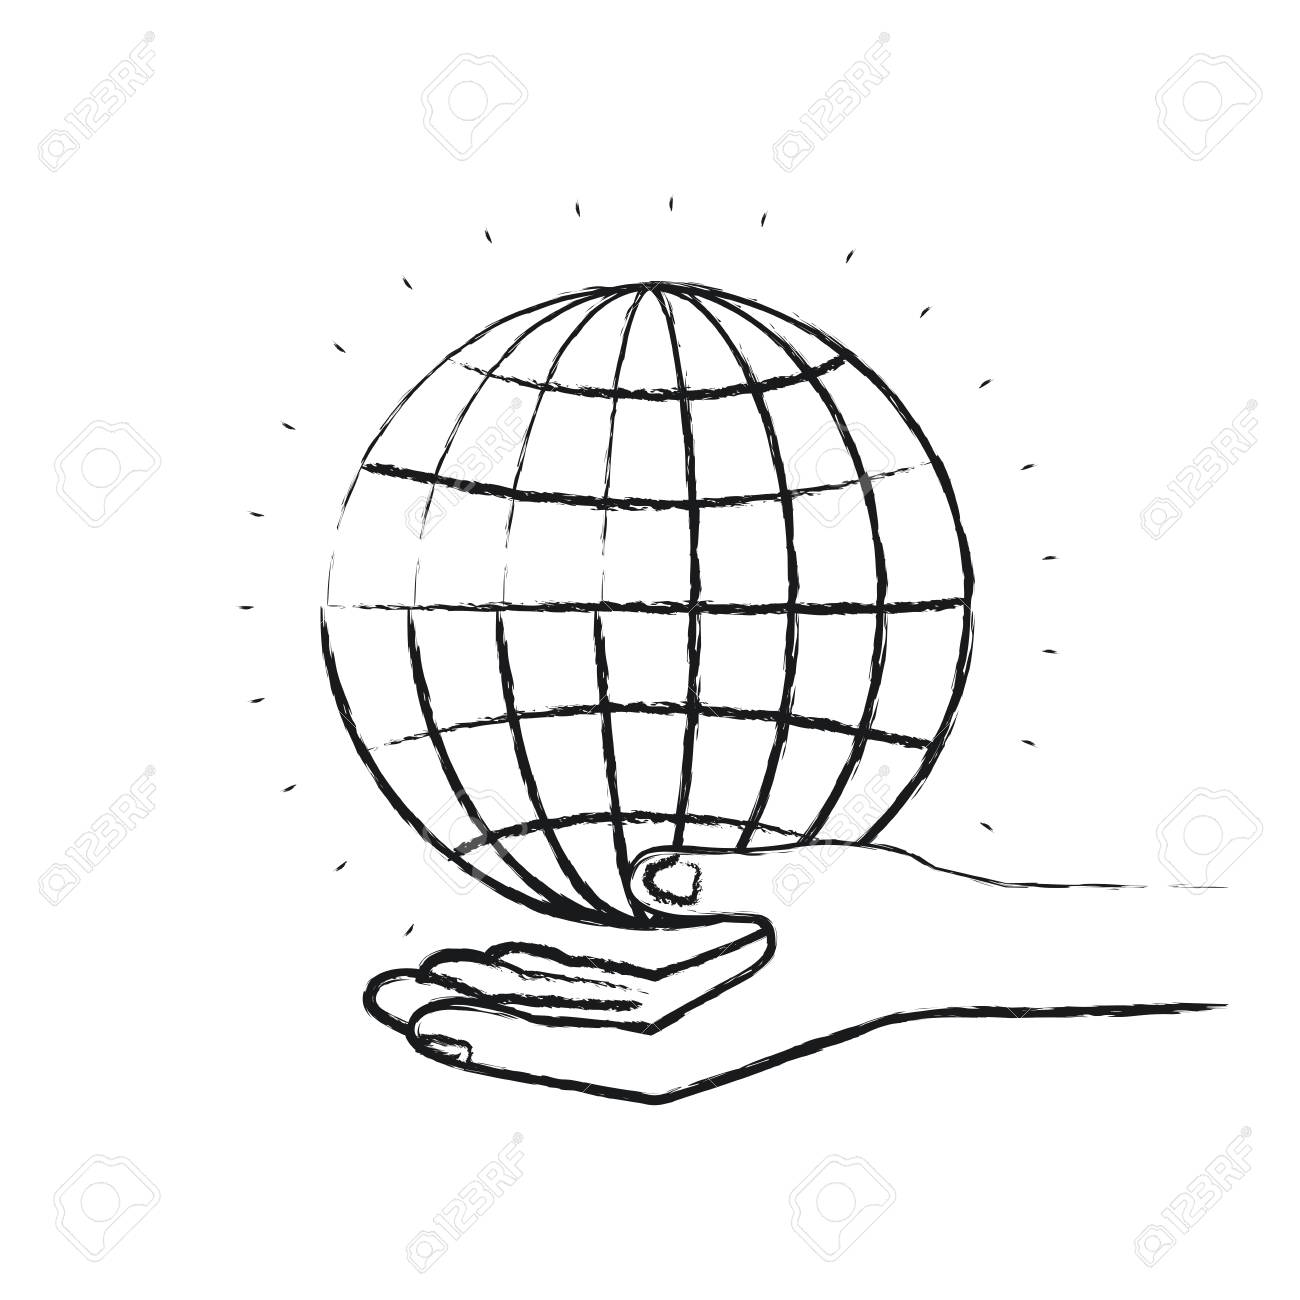 A Blurred Silhouette Hand Palm Giving A Globe Chart Charity Symbol